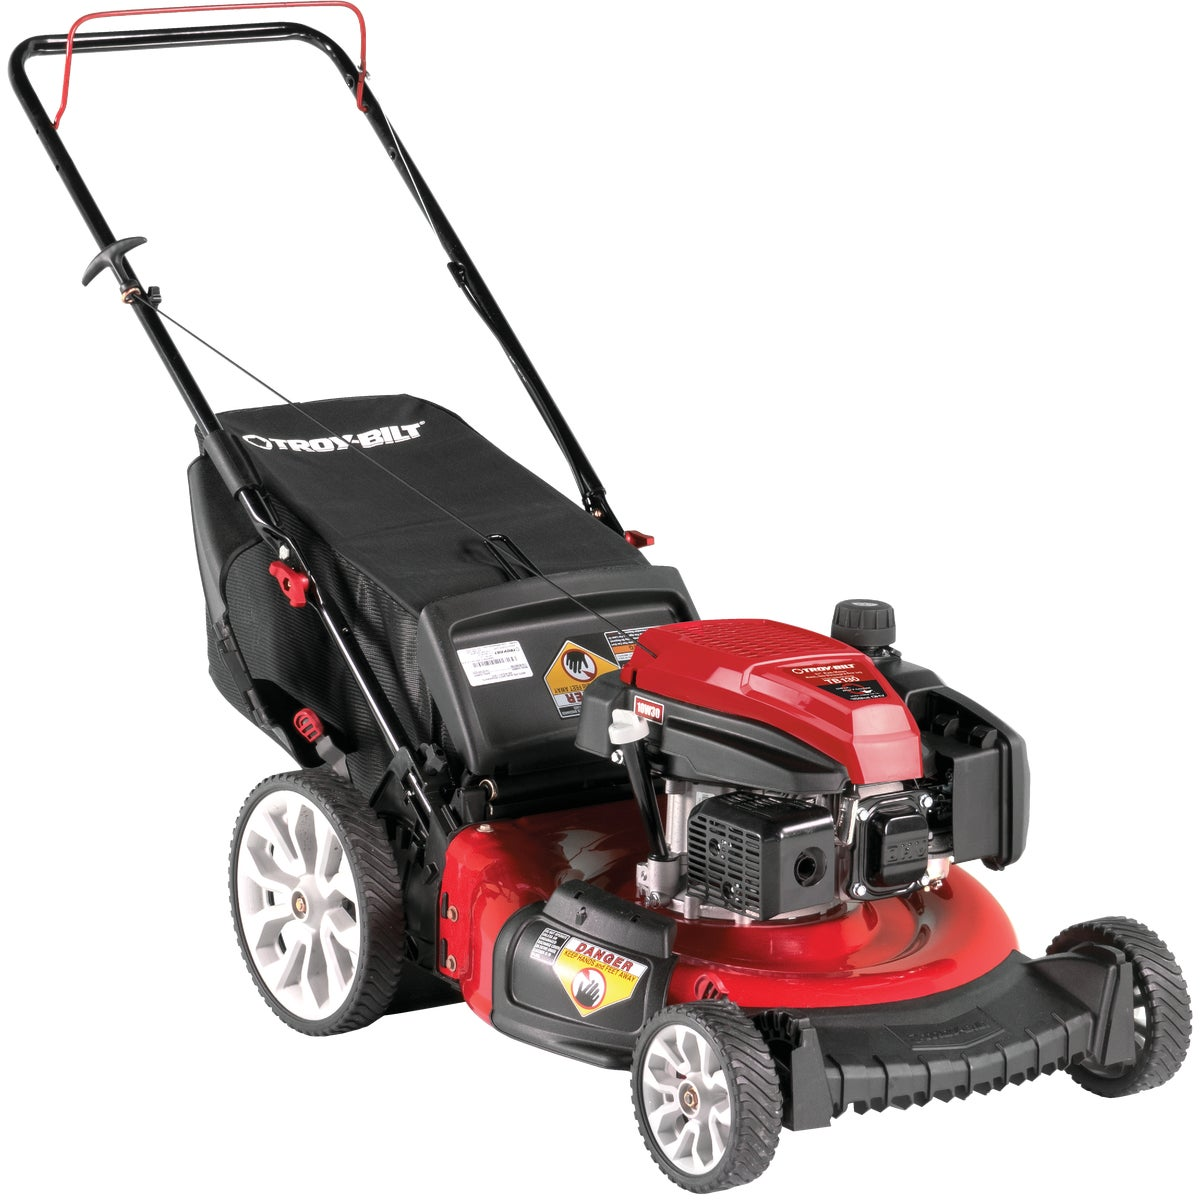 "21"" 3-1 PUSH MOWER - 11A-B22J766 by M T D Products"